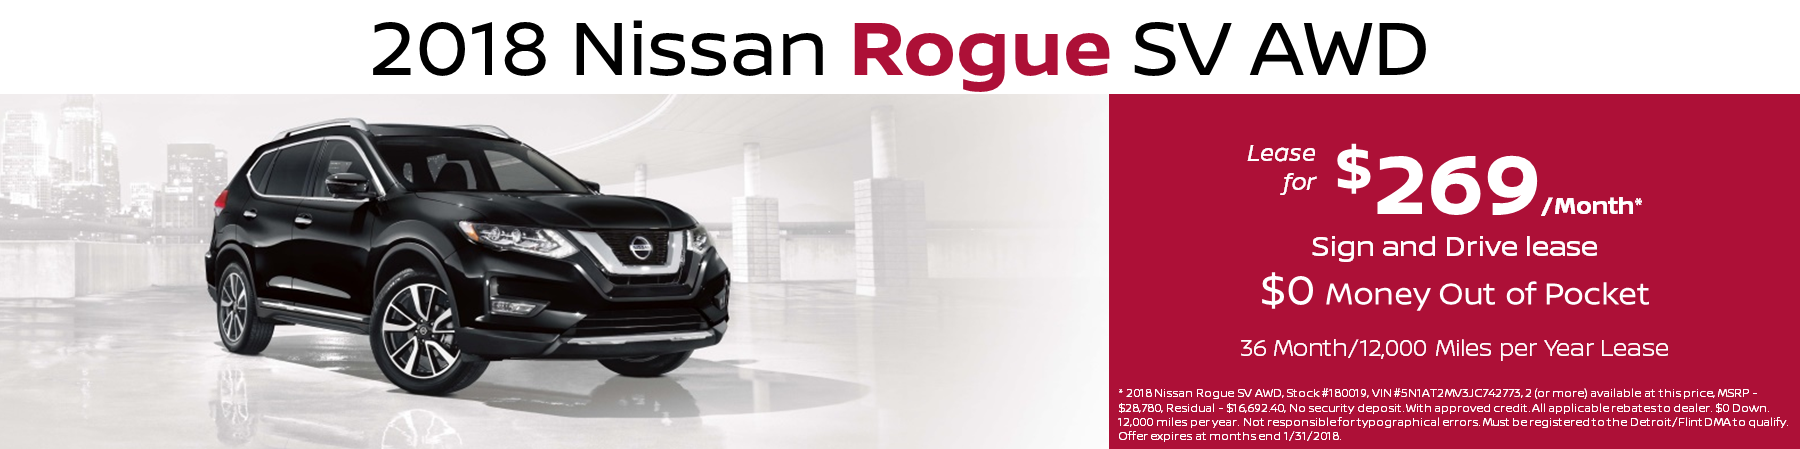 Nissan Rogue Lease Special